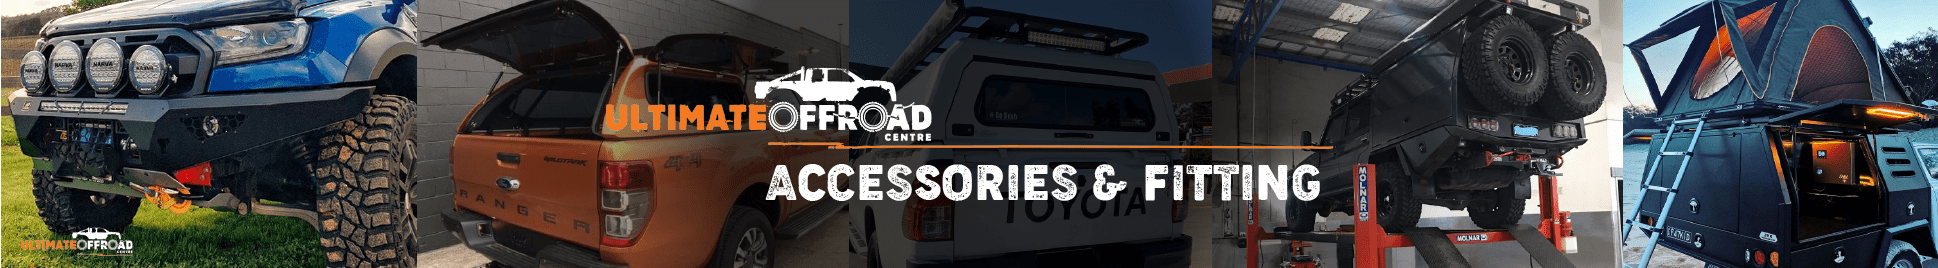 Offroad accessories fitting services victoria australia